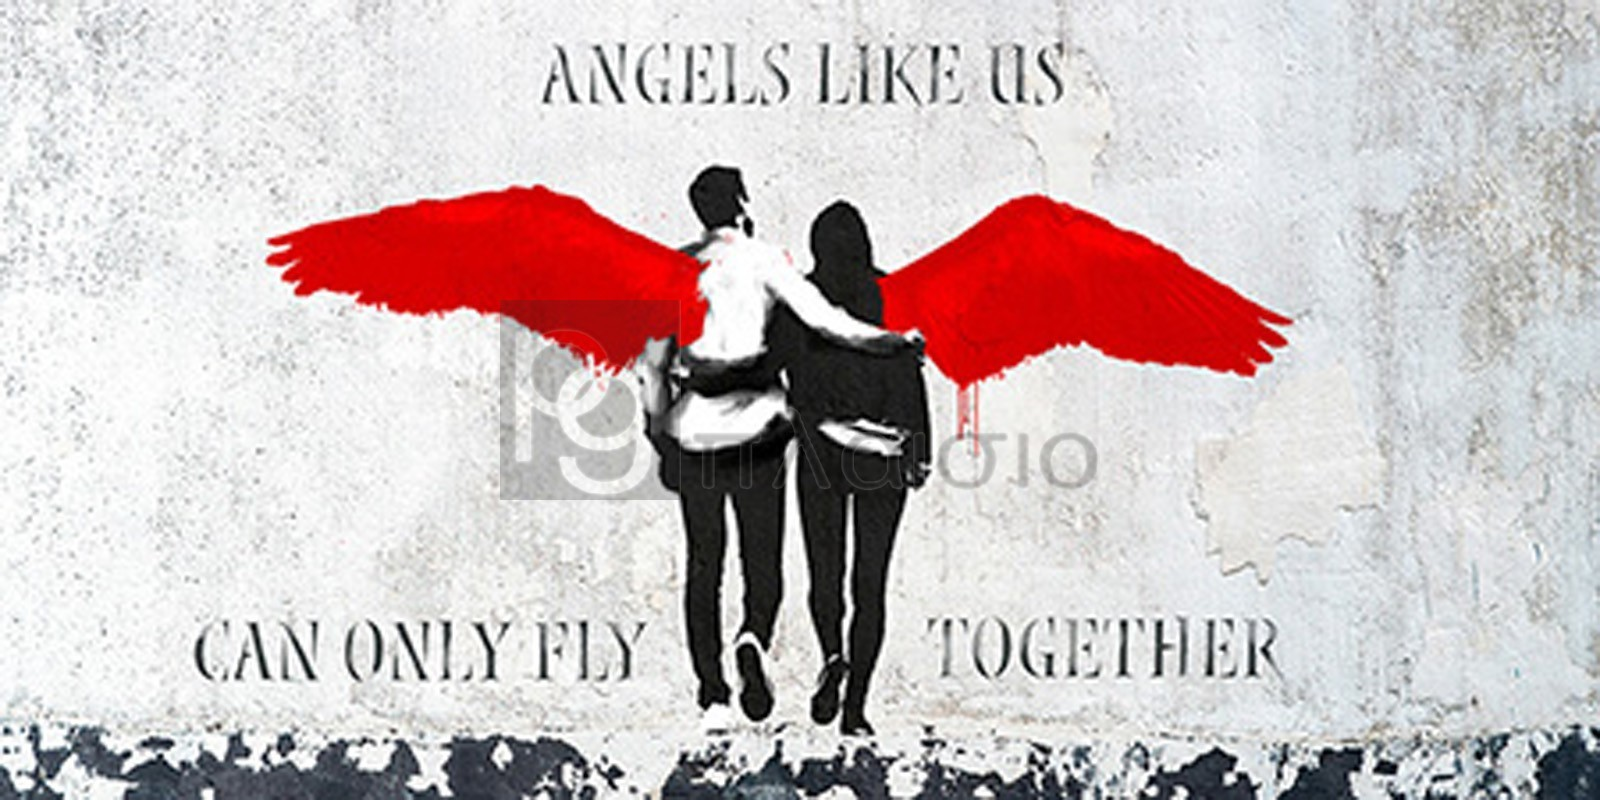 MASTERFUNK COLLECTIVE - Angels Like Us